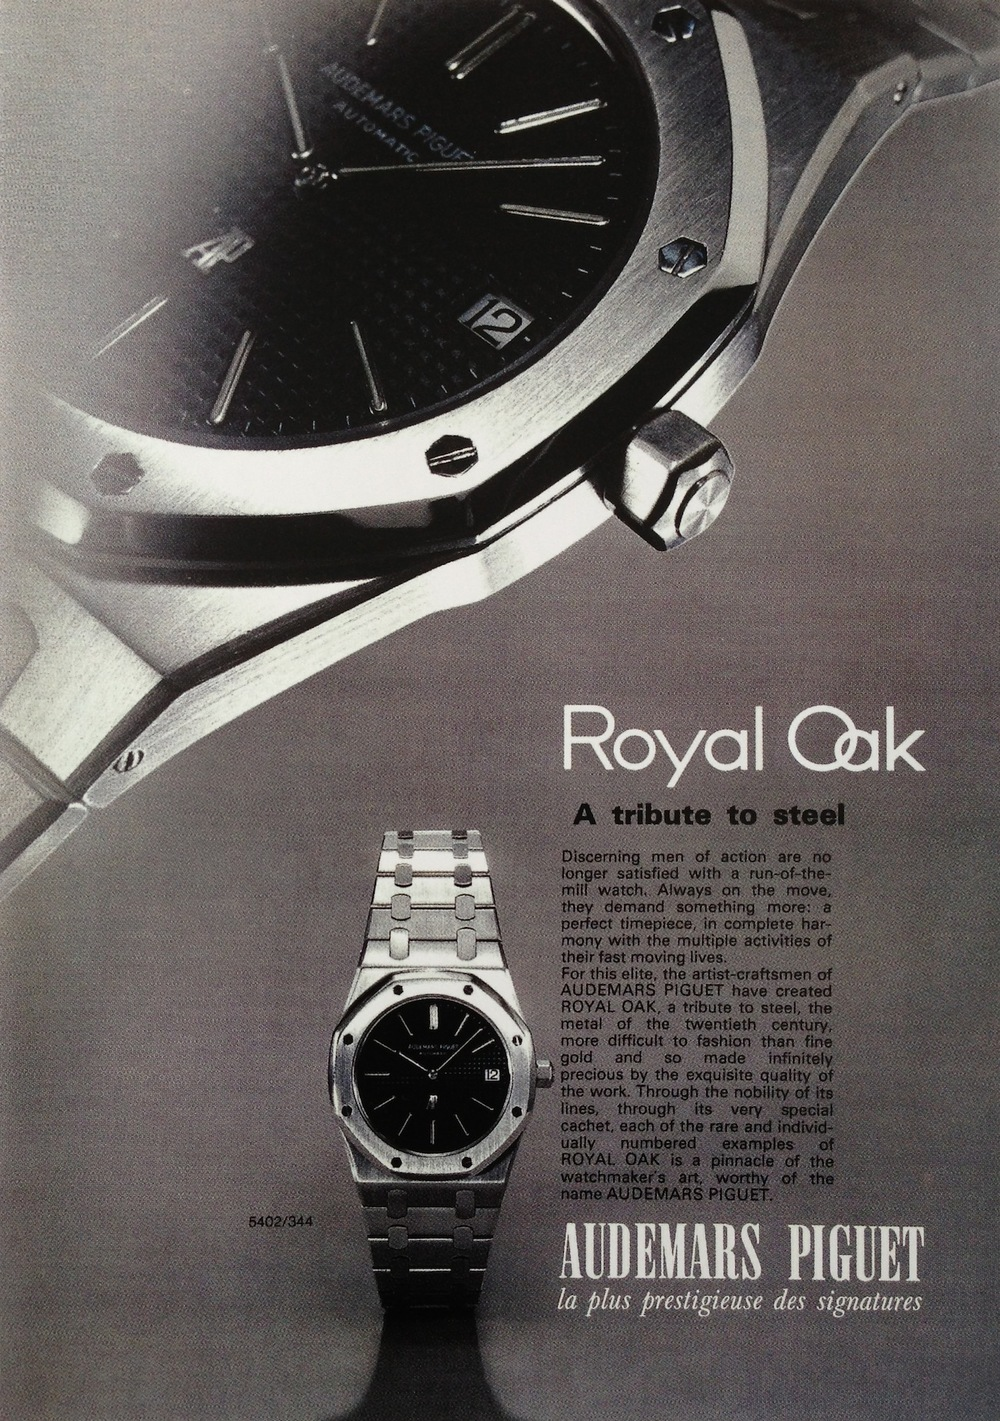 First Audemars Piguet Royal Oak Advertisement.